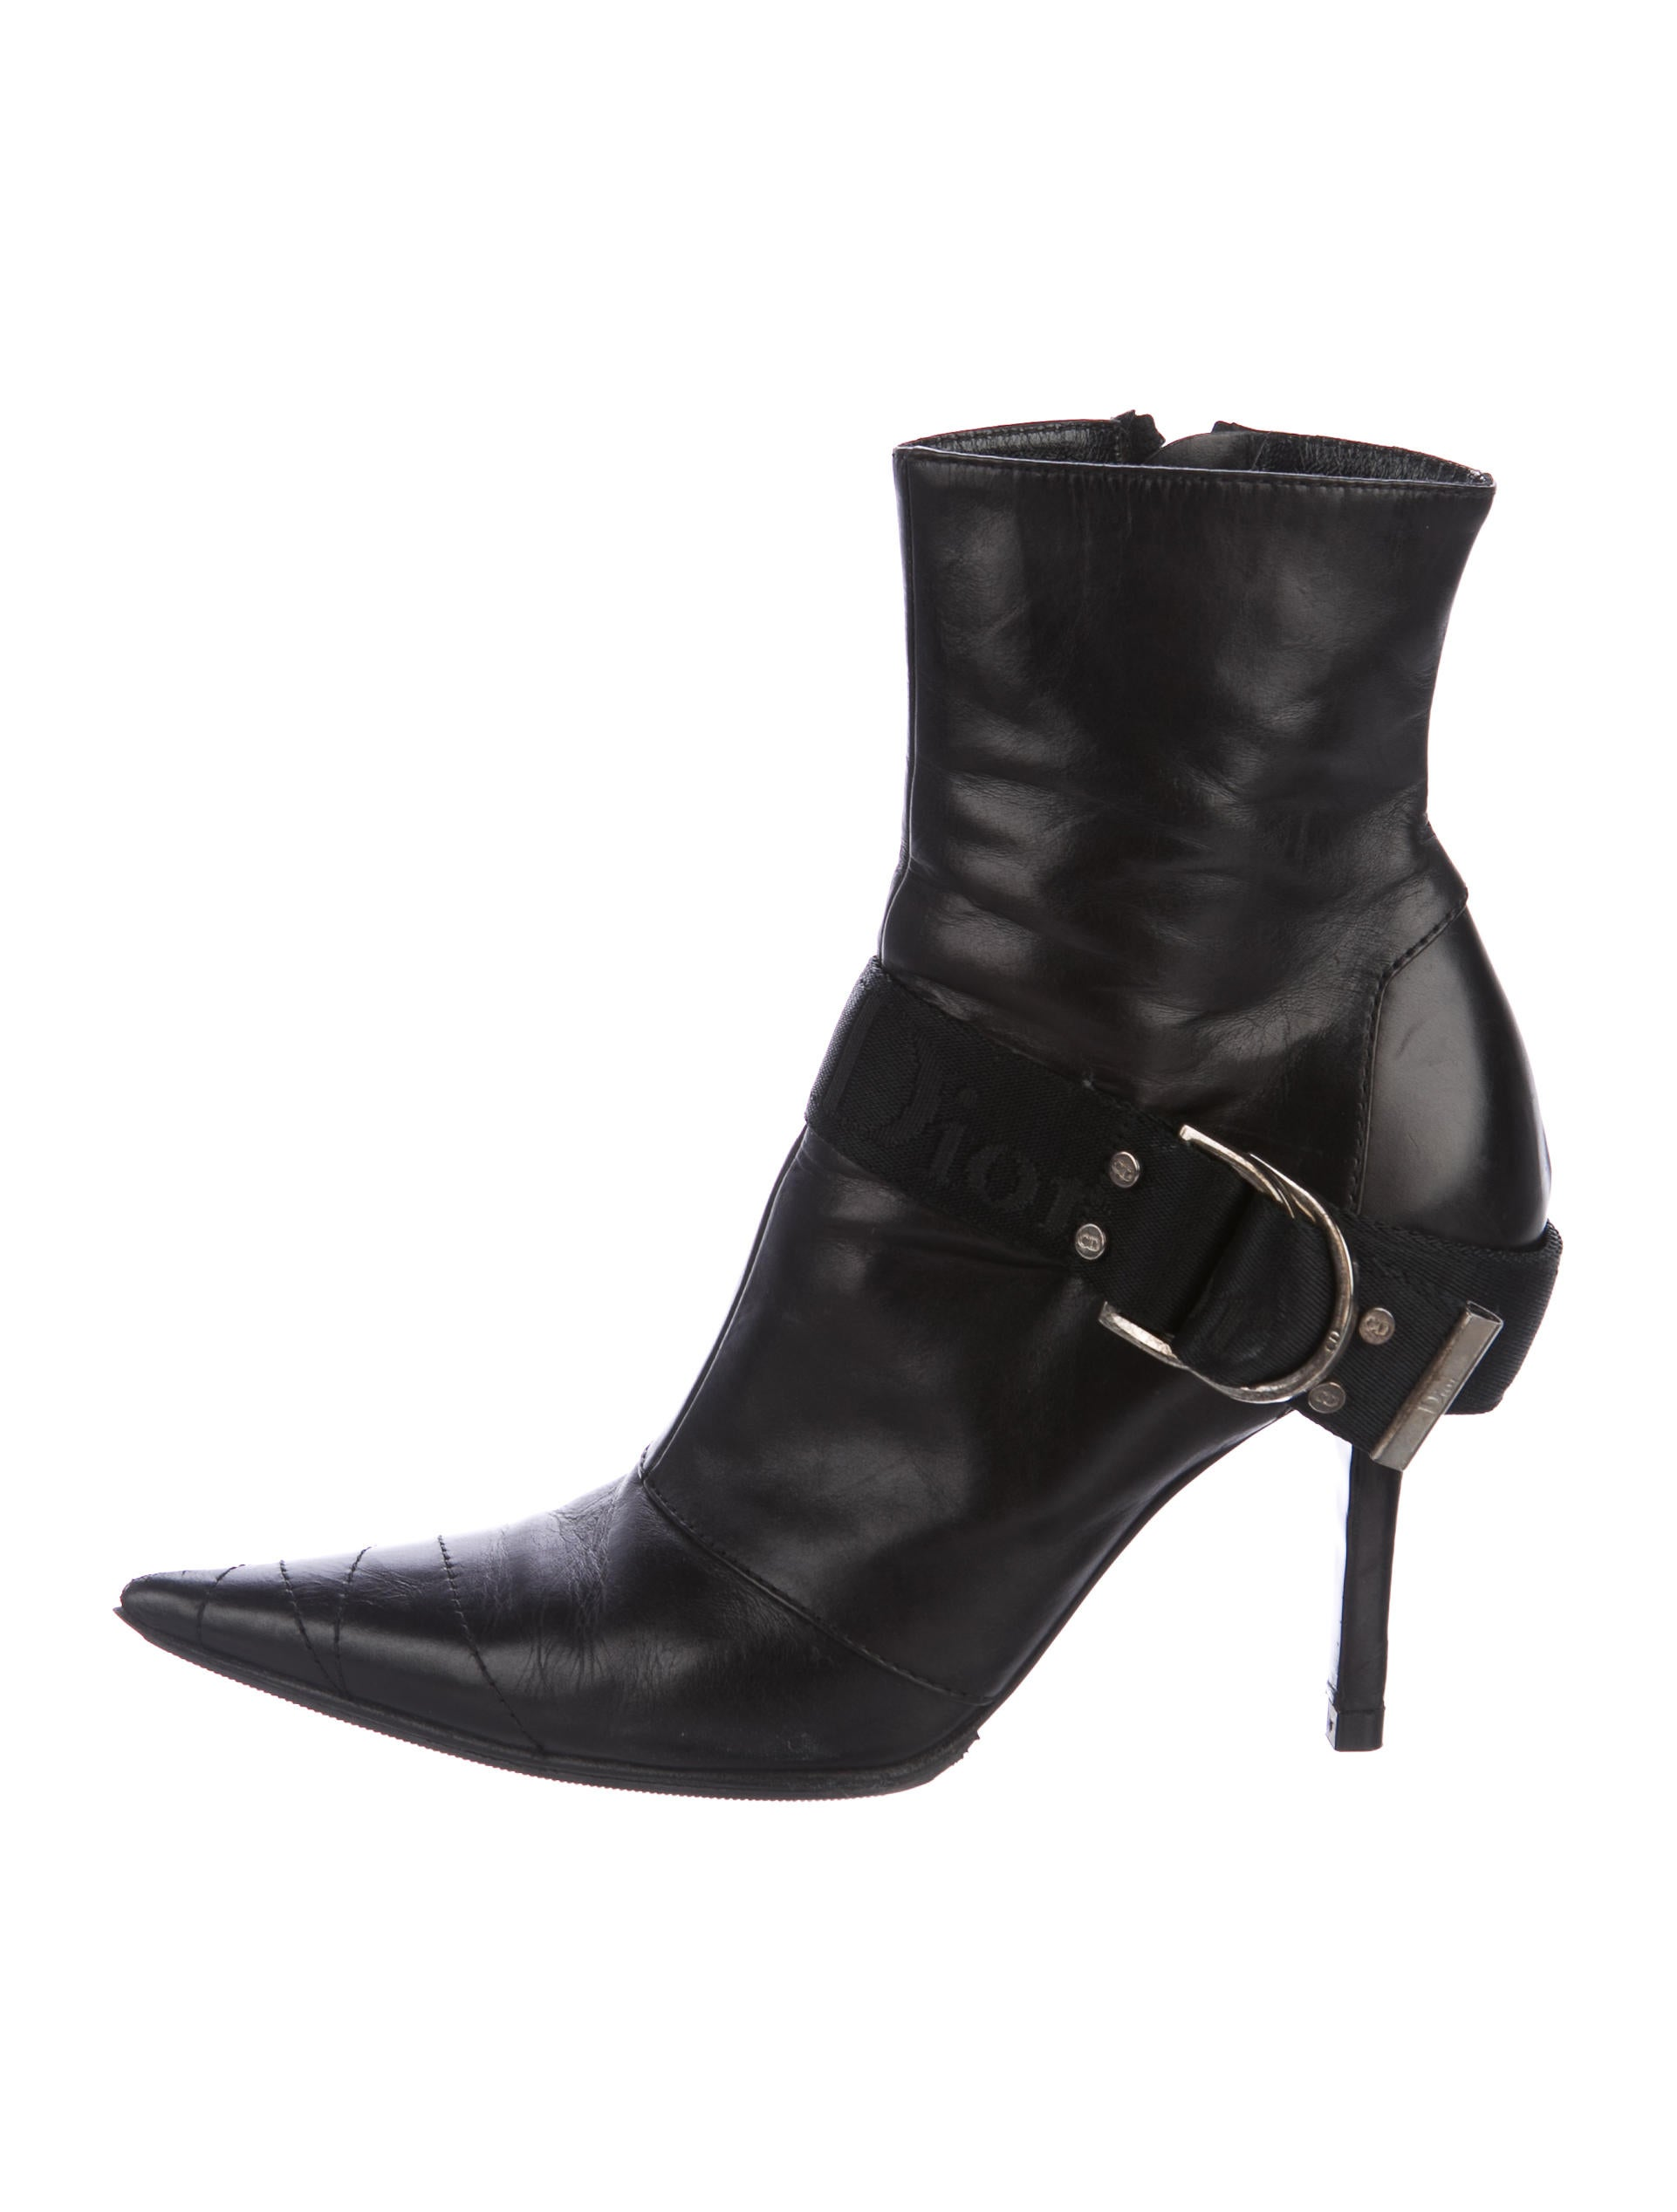 huge surprise for sale Christian Dior Leather Pointed-Toe Booties outlet with mastercard free shipping brand new unisex outlet footlocker finishline with paypal cheap online hZ7T19N